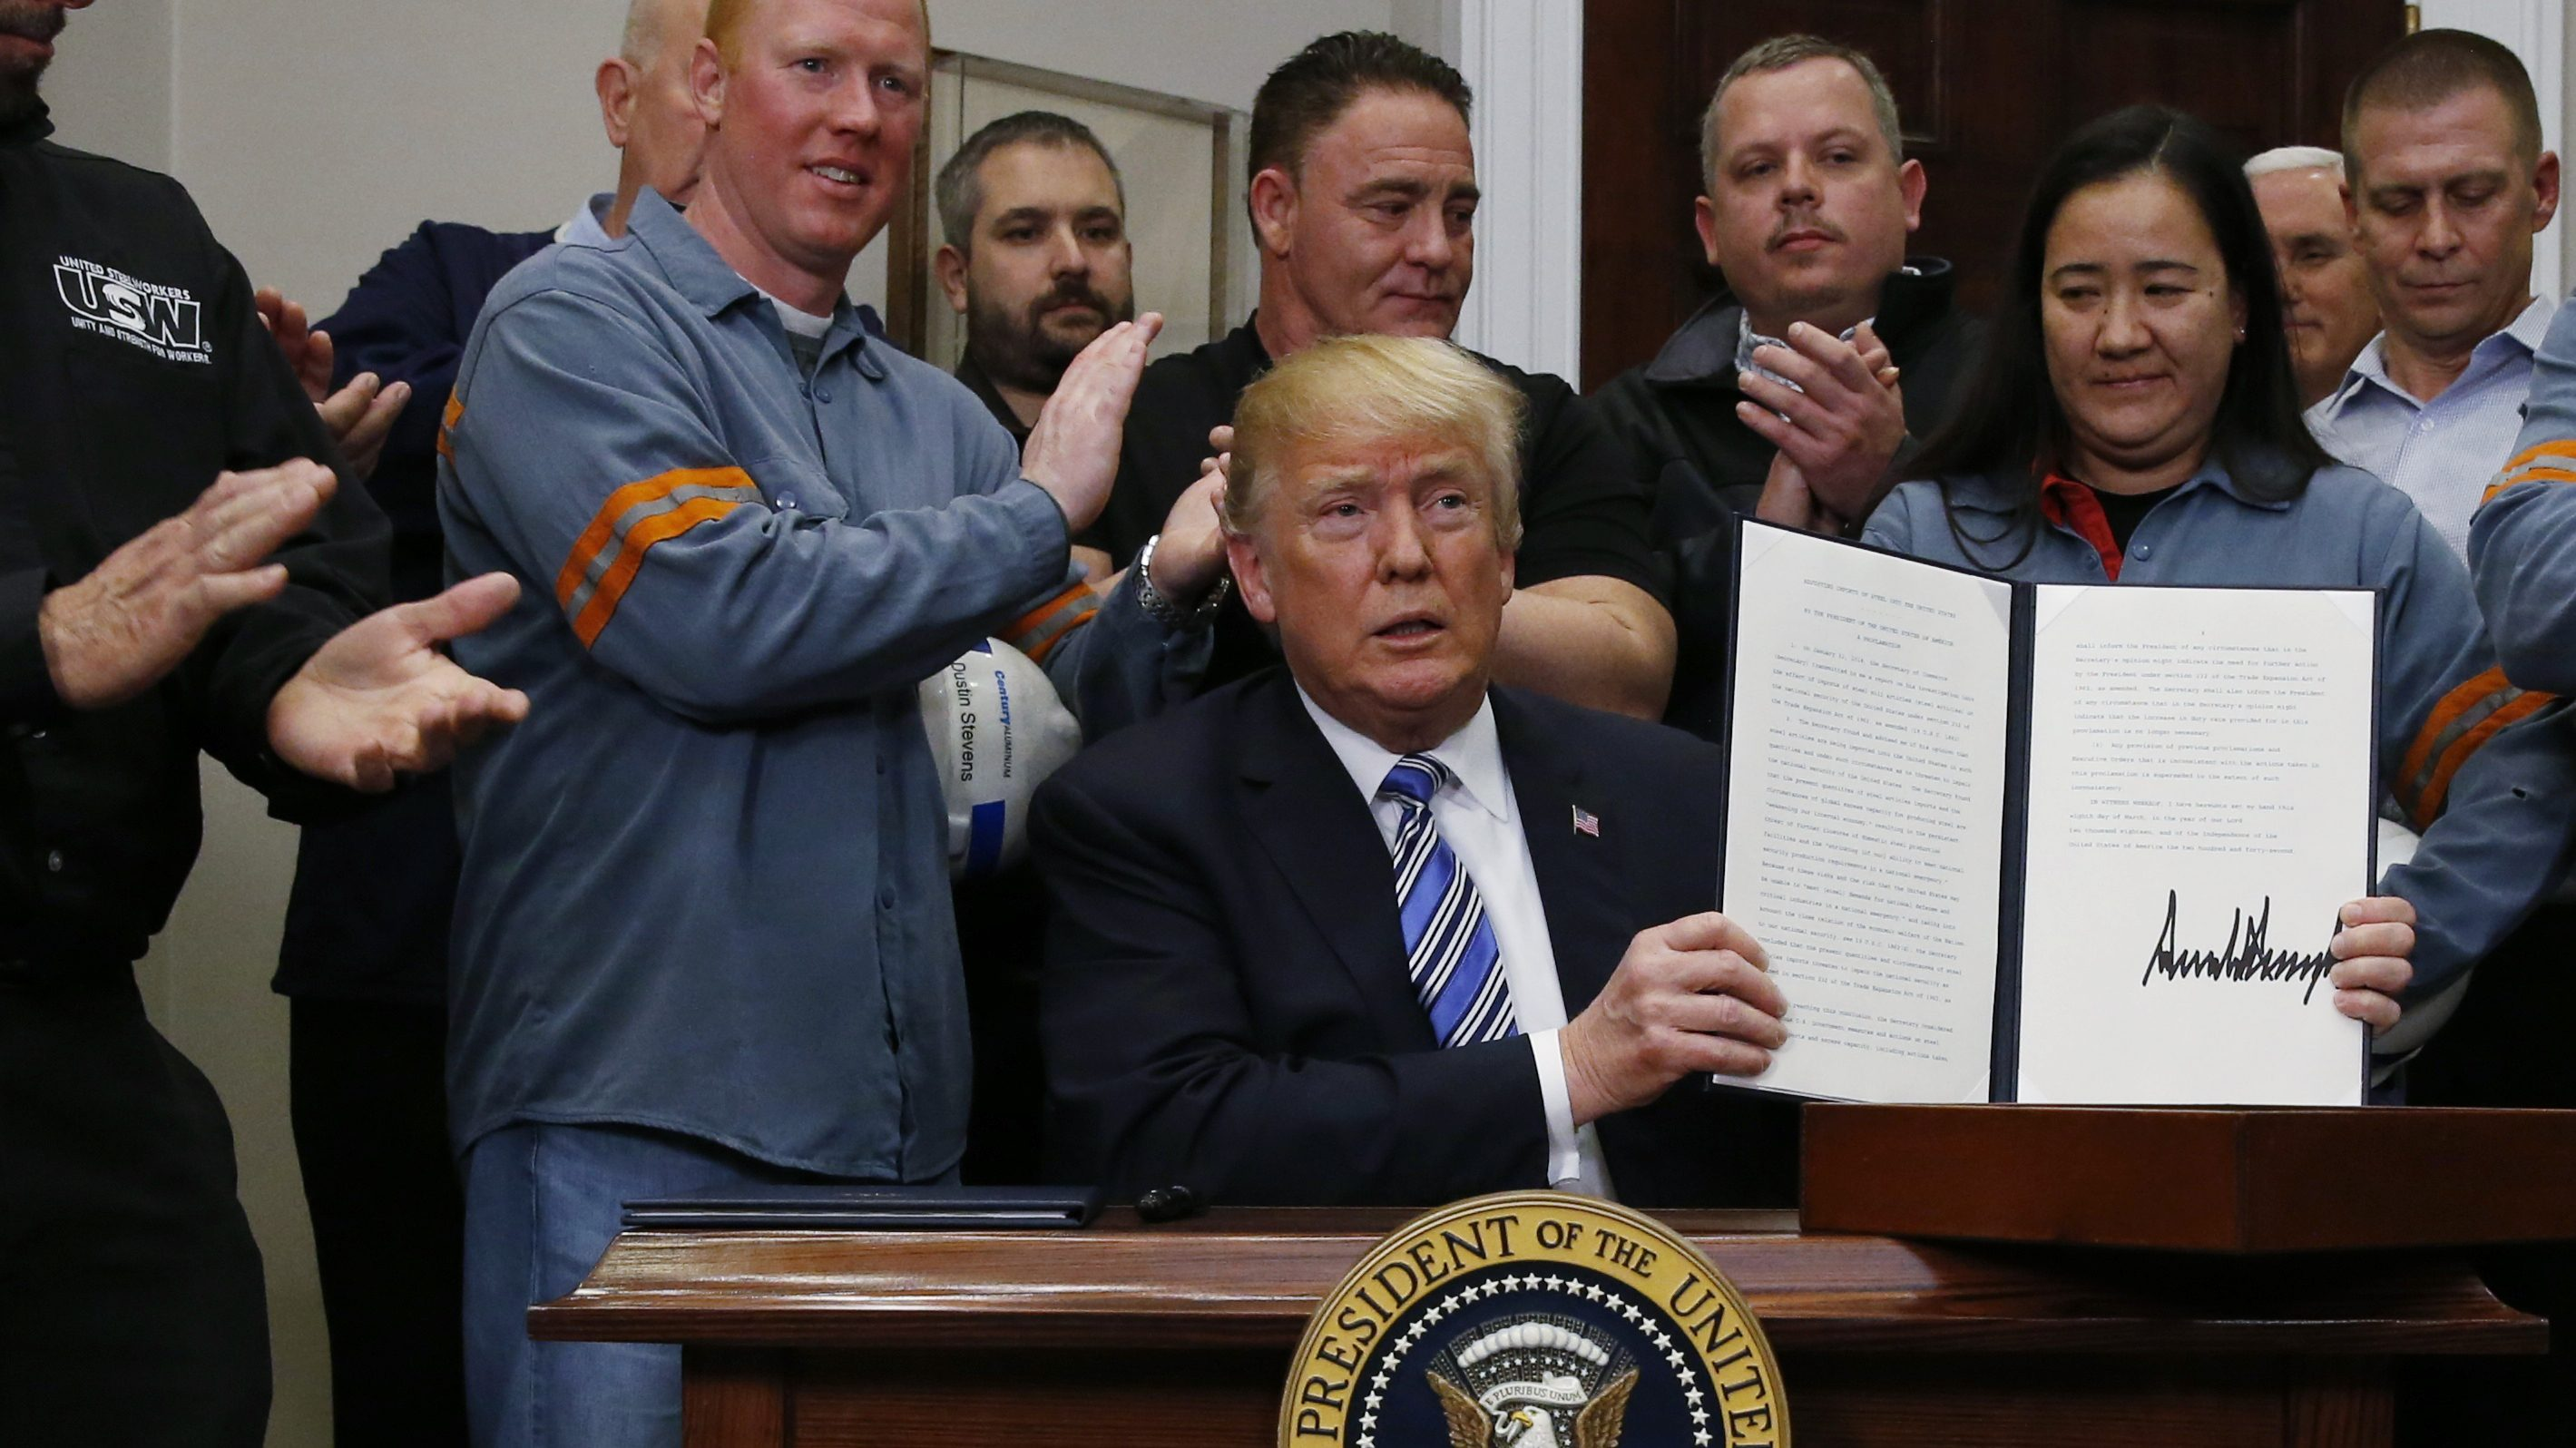 U.S. President Donald Trump holds up a proclamation during a White House ceremony to establish tariffs on imports of steel and aluminum at the White House in Washington, U.S., March 8, 2018. REUTERS/Leah Millis - HP1EE381MRMAS